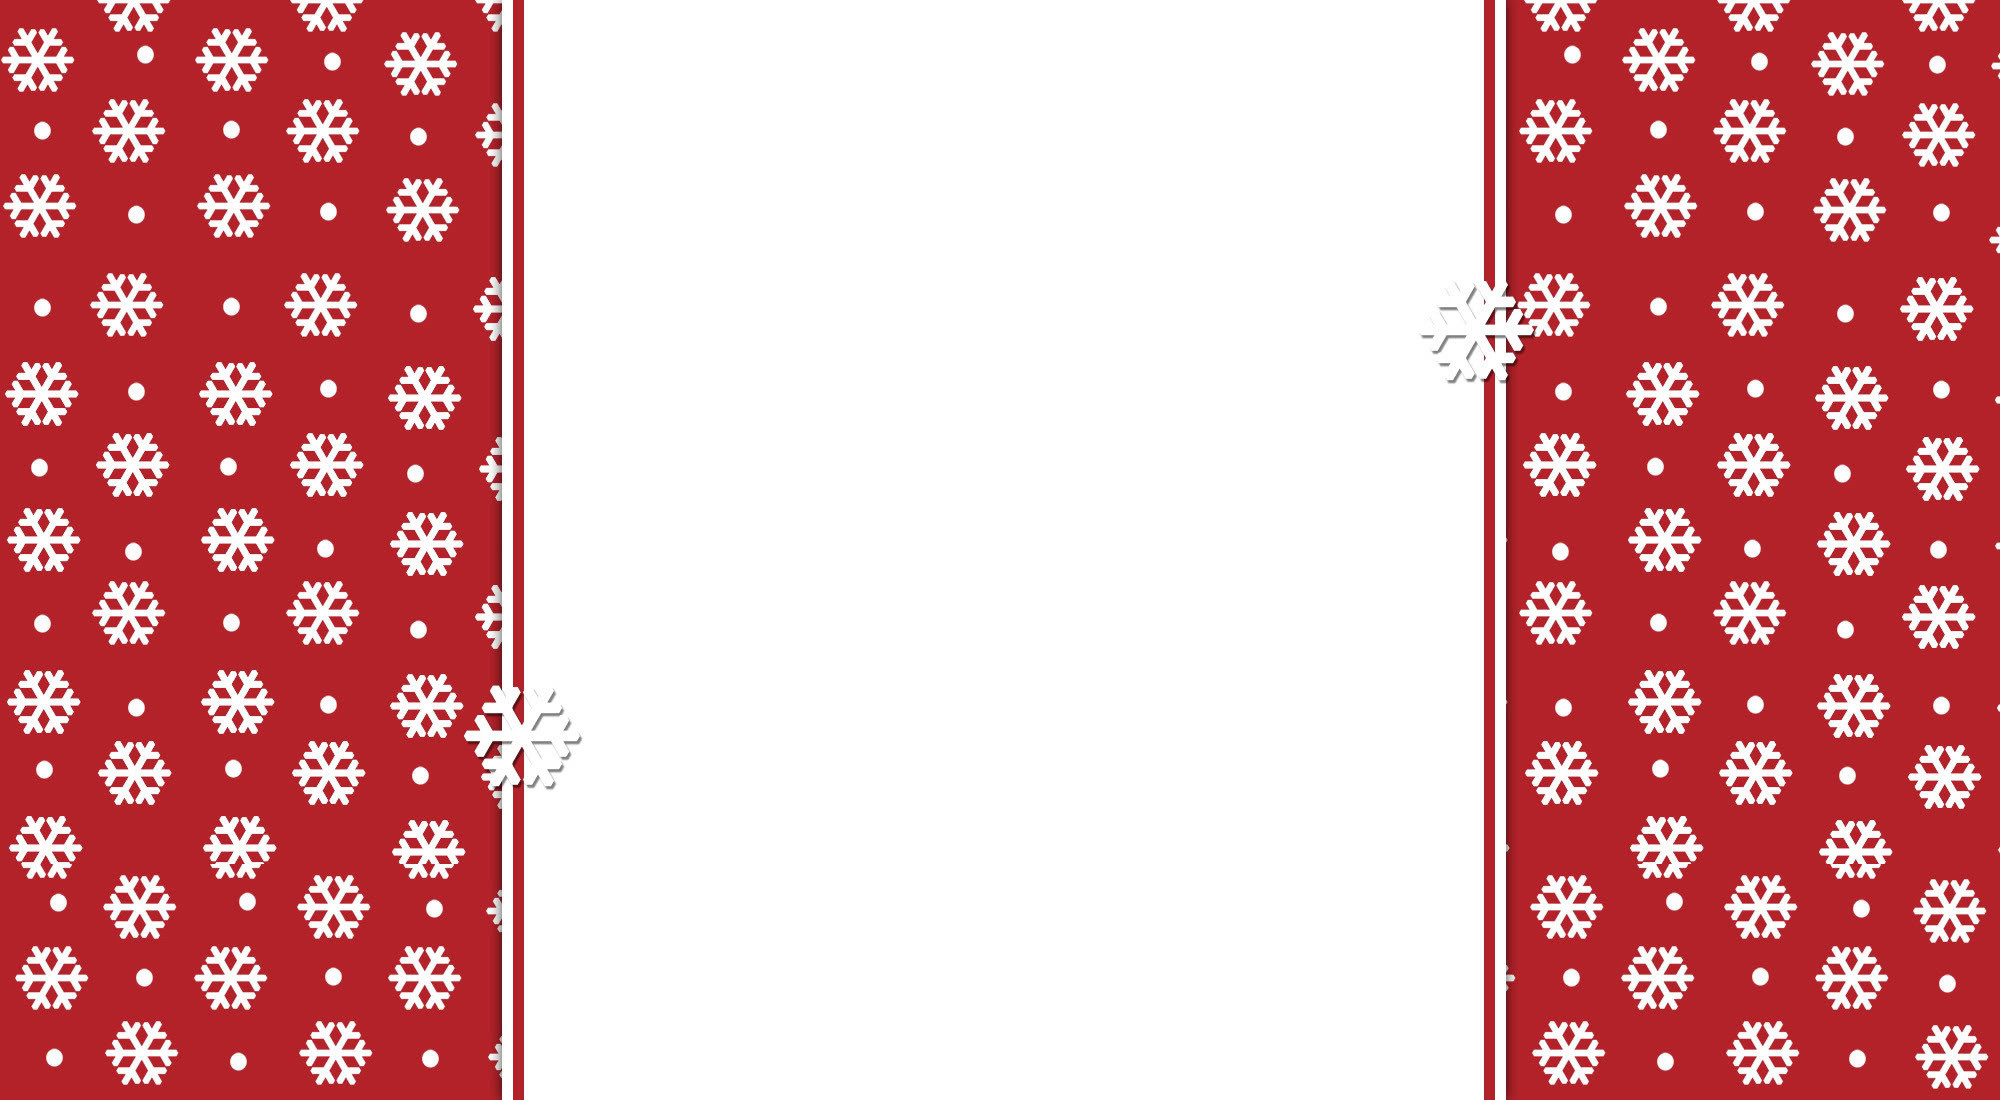 2000x1100 Free Christmas Backgrounds